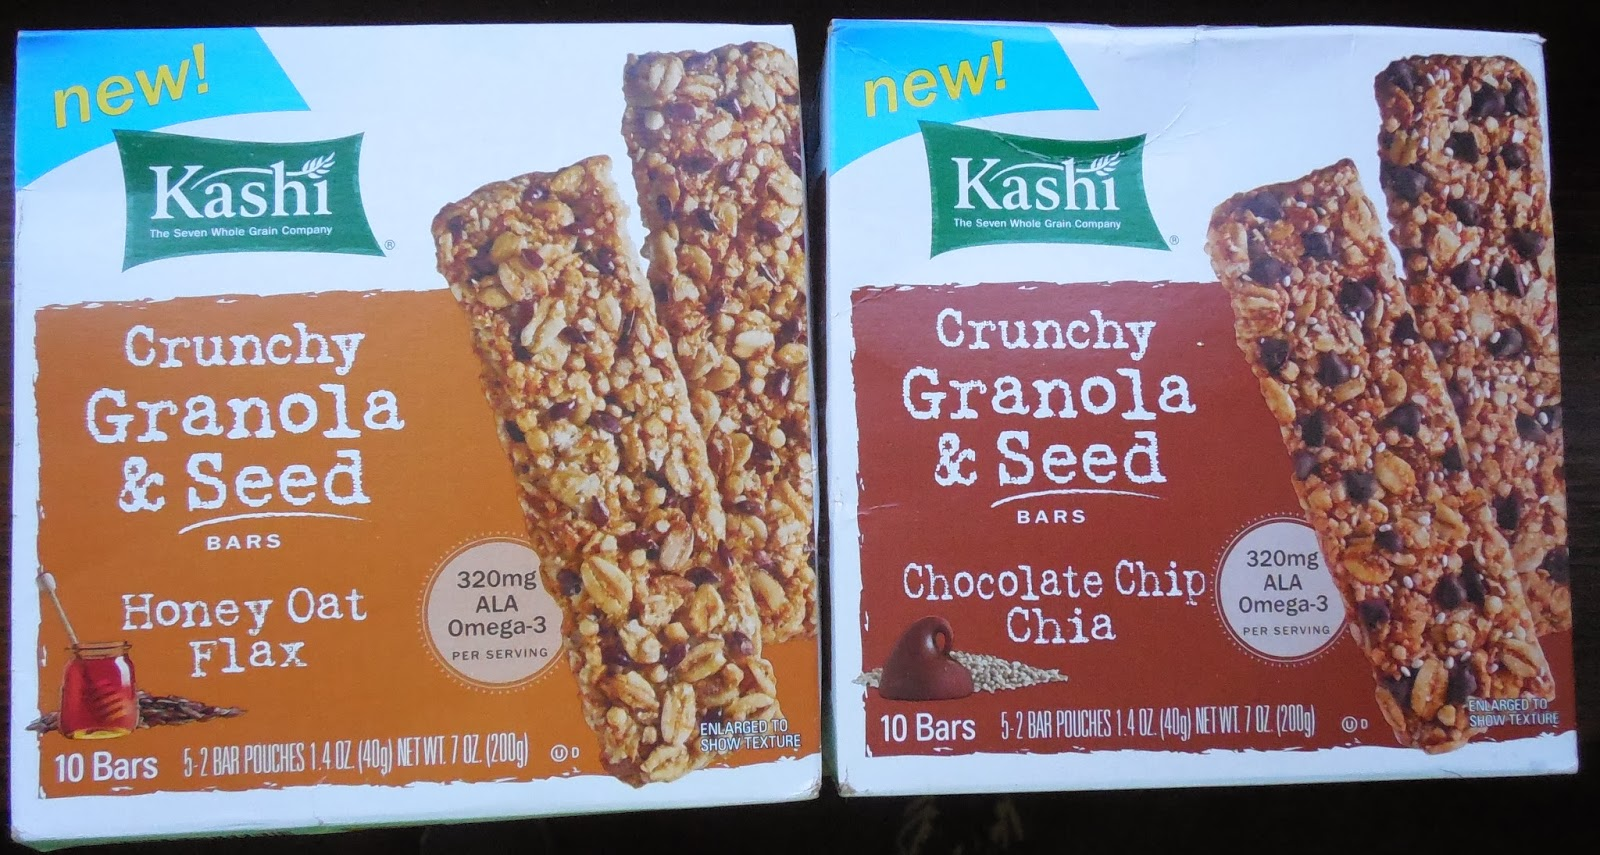 Kashi Crunchy Granola and Seed Bars